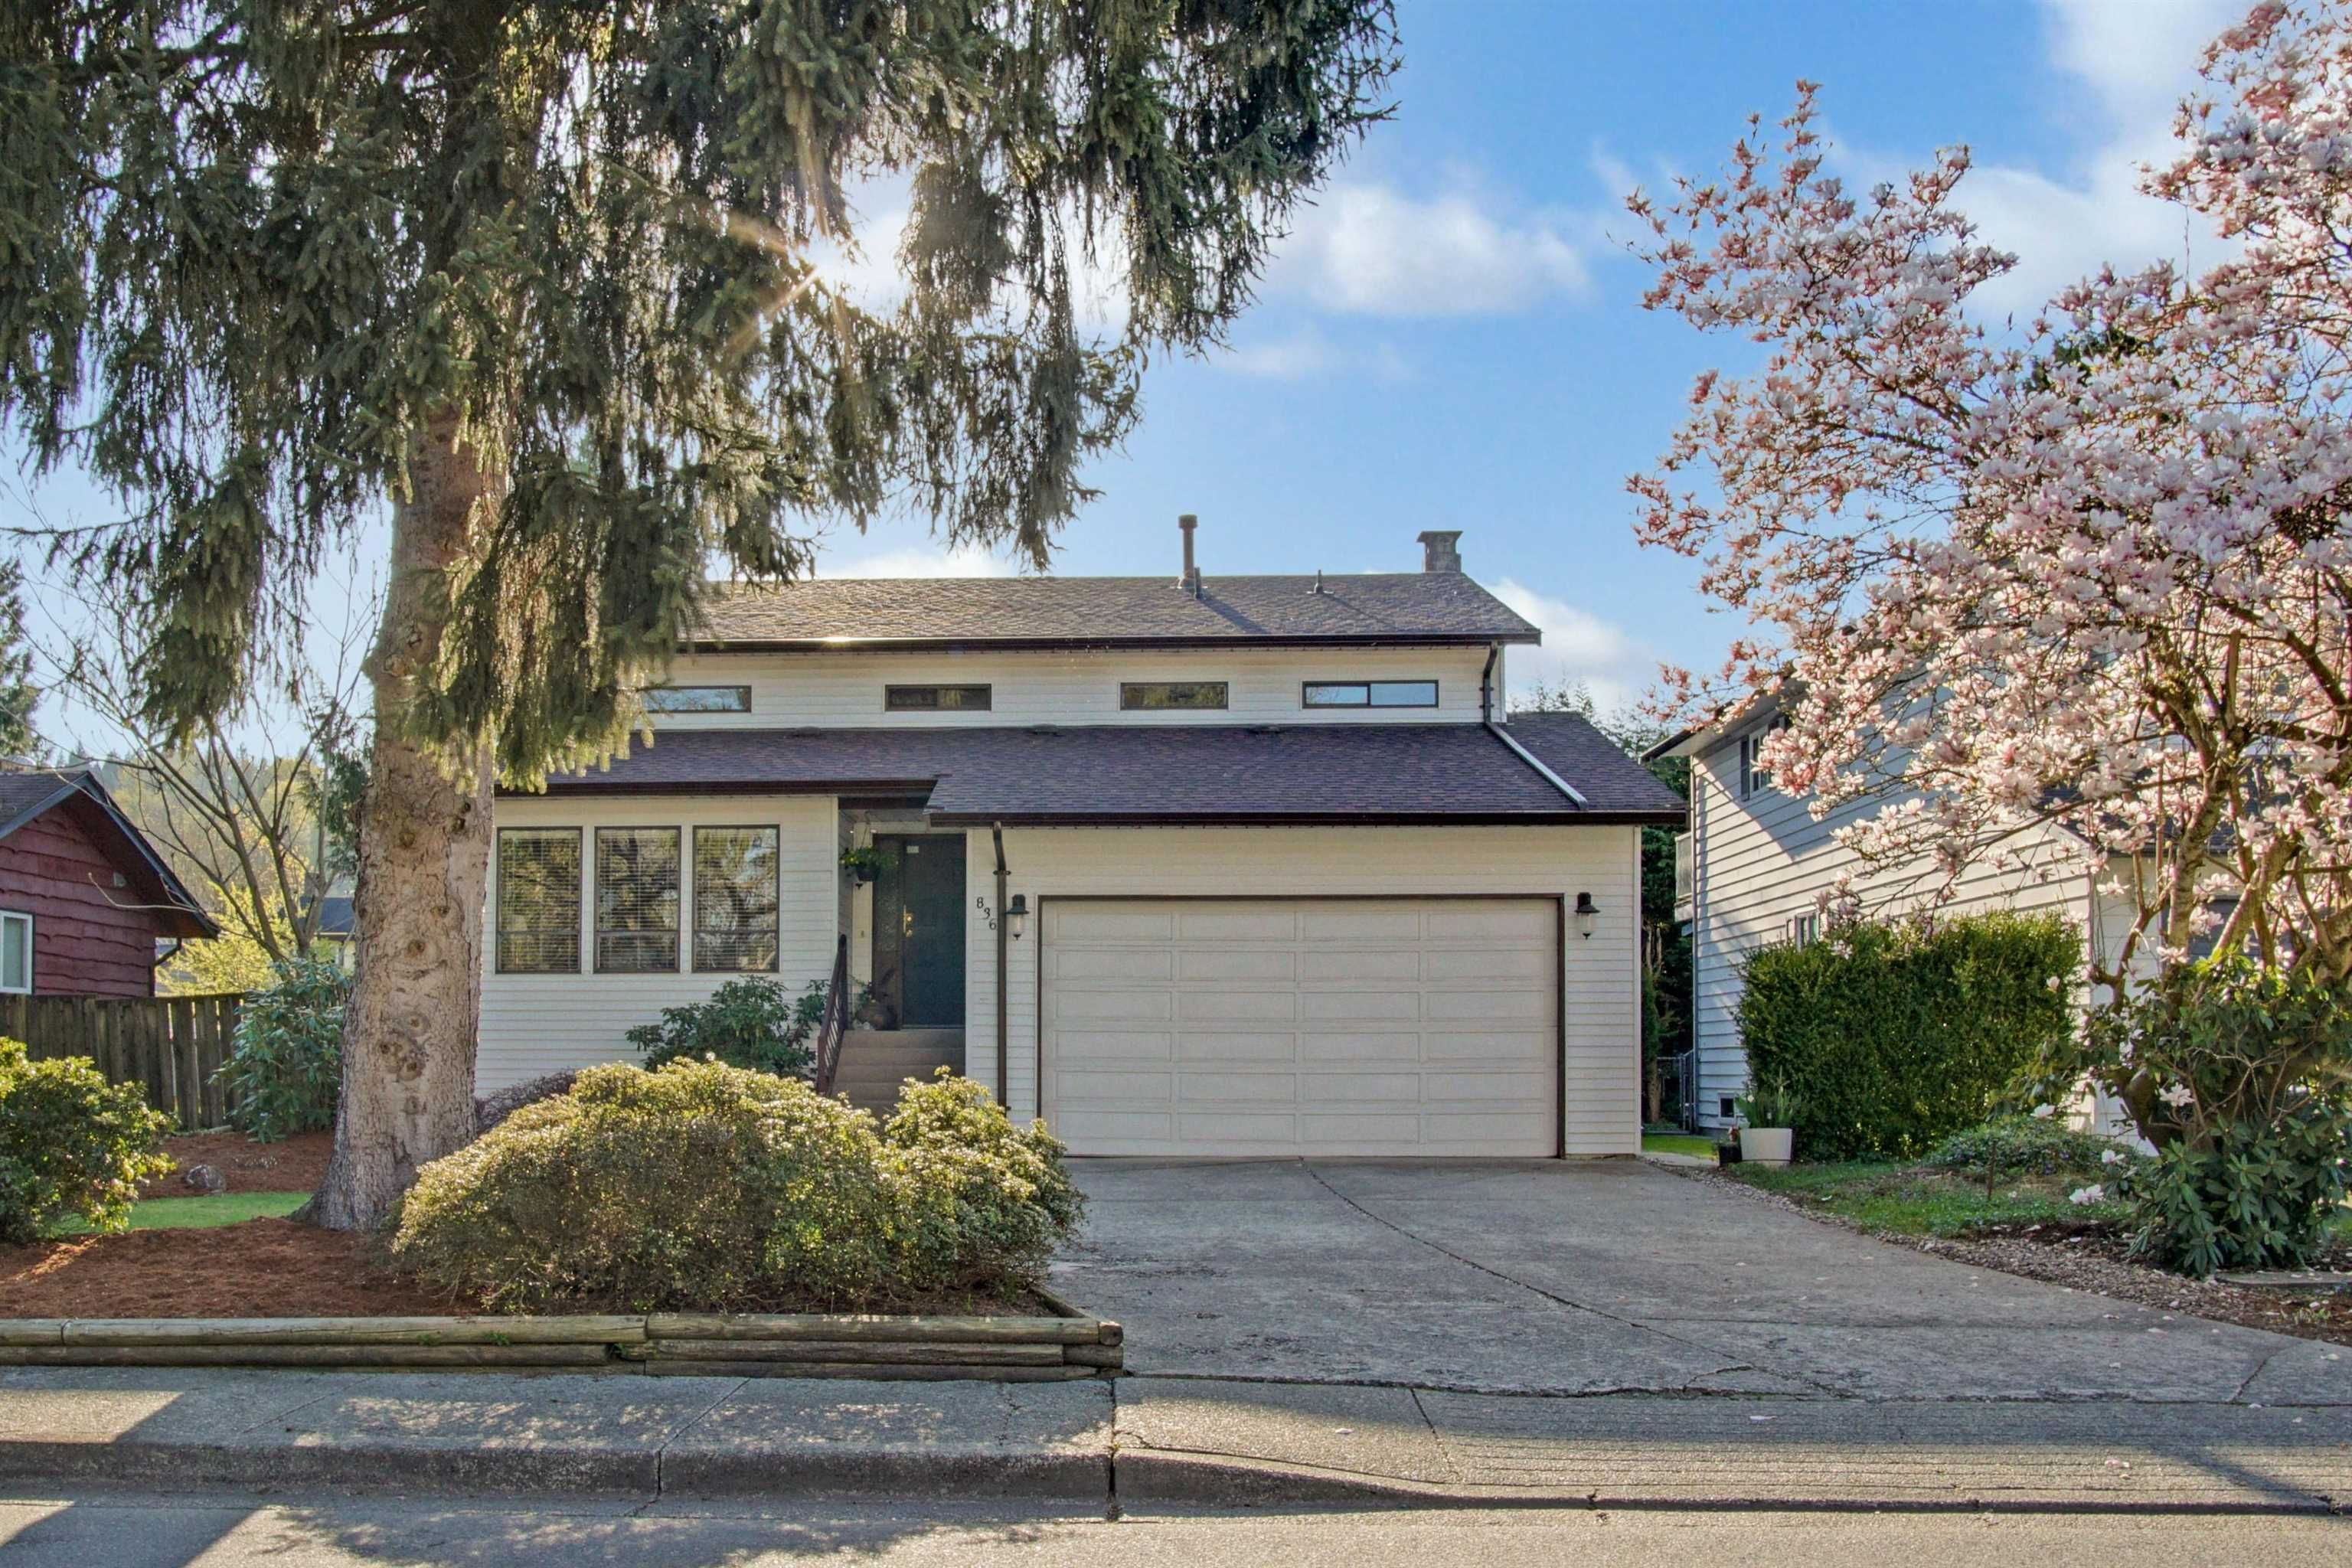 Main Photo: 836 IRVINE Street in Coquitlam: Meadow Brook House for sale : MLS®# R2611940